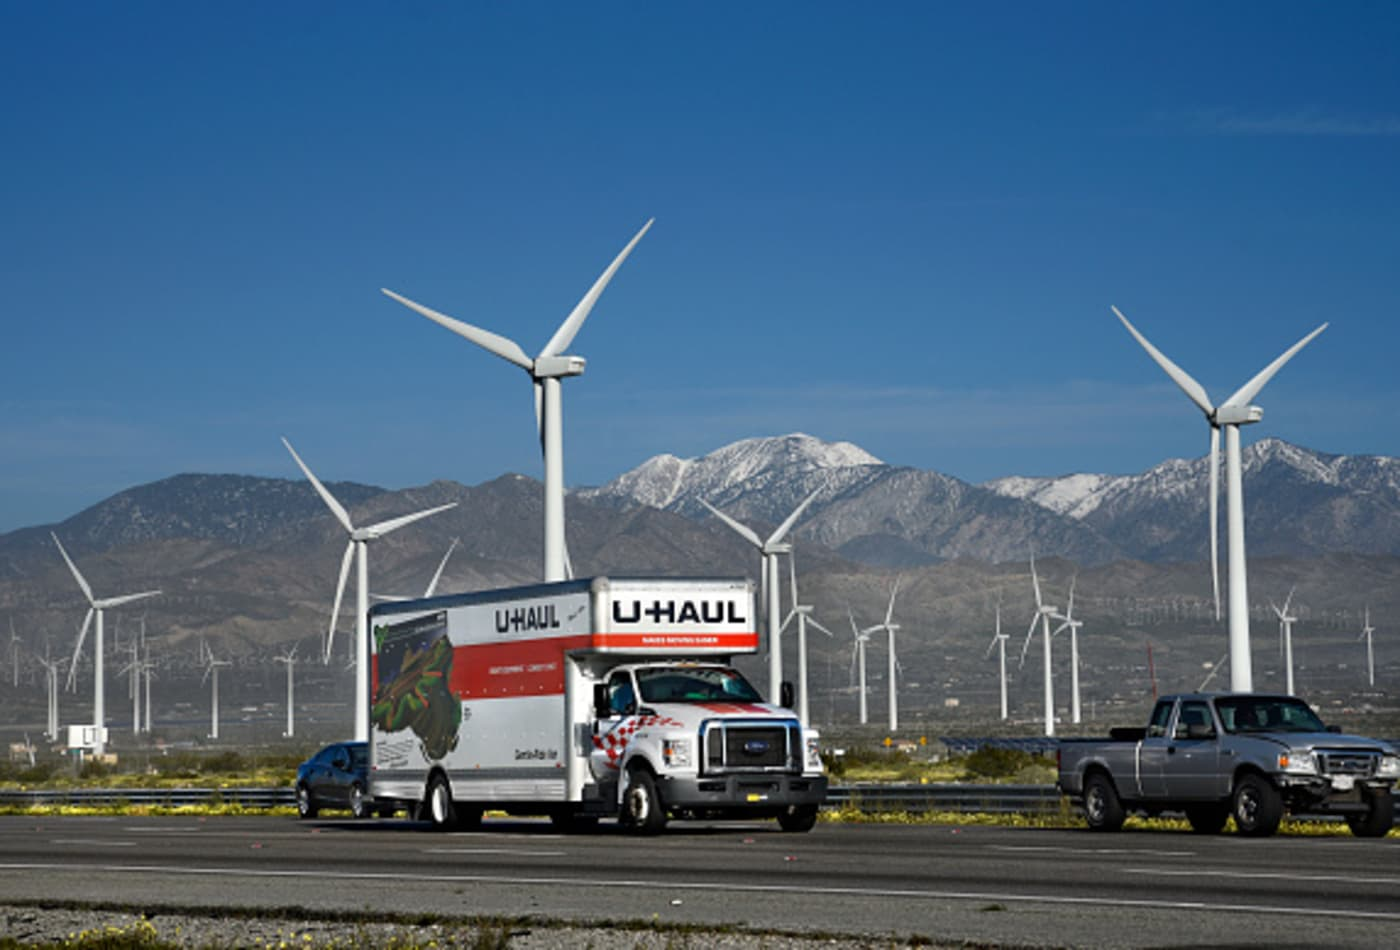 The states Americans headed to the most in 2020, according to U-Haul